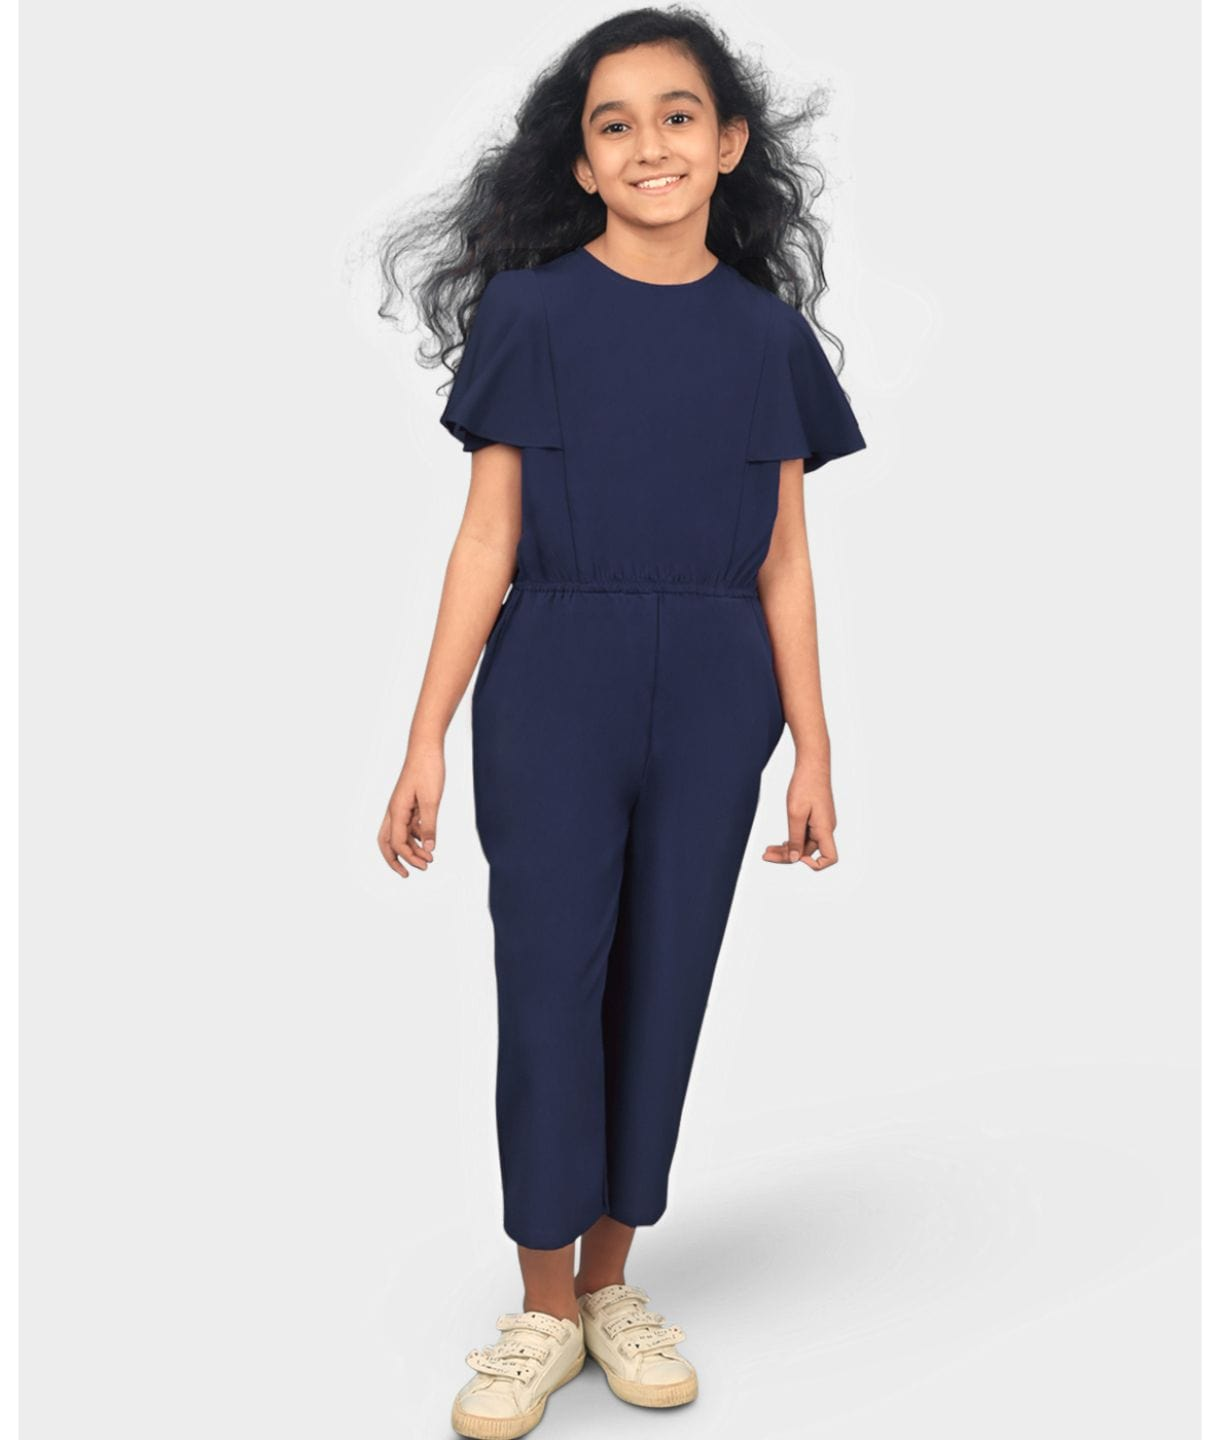 Solid Ruffle Sleeves Girls Jumpsuit